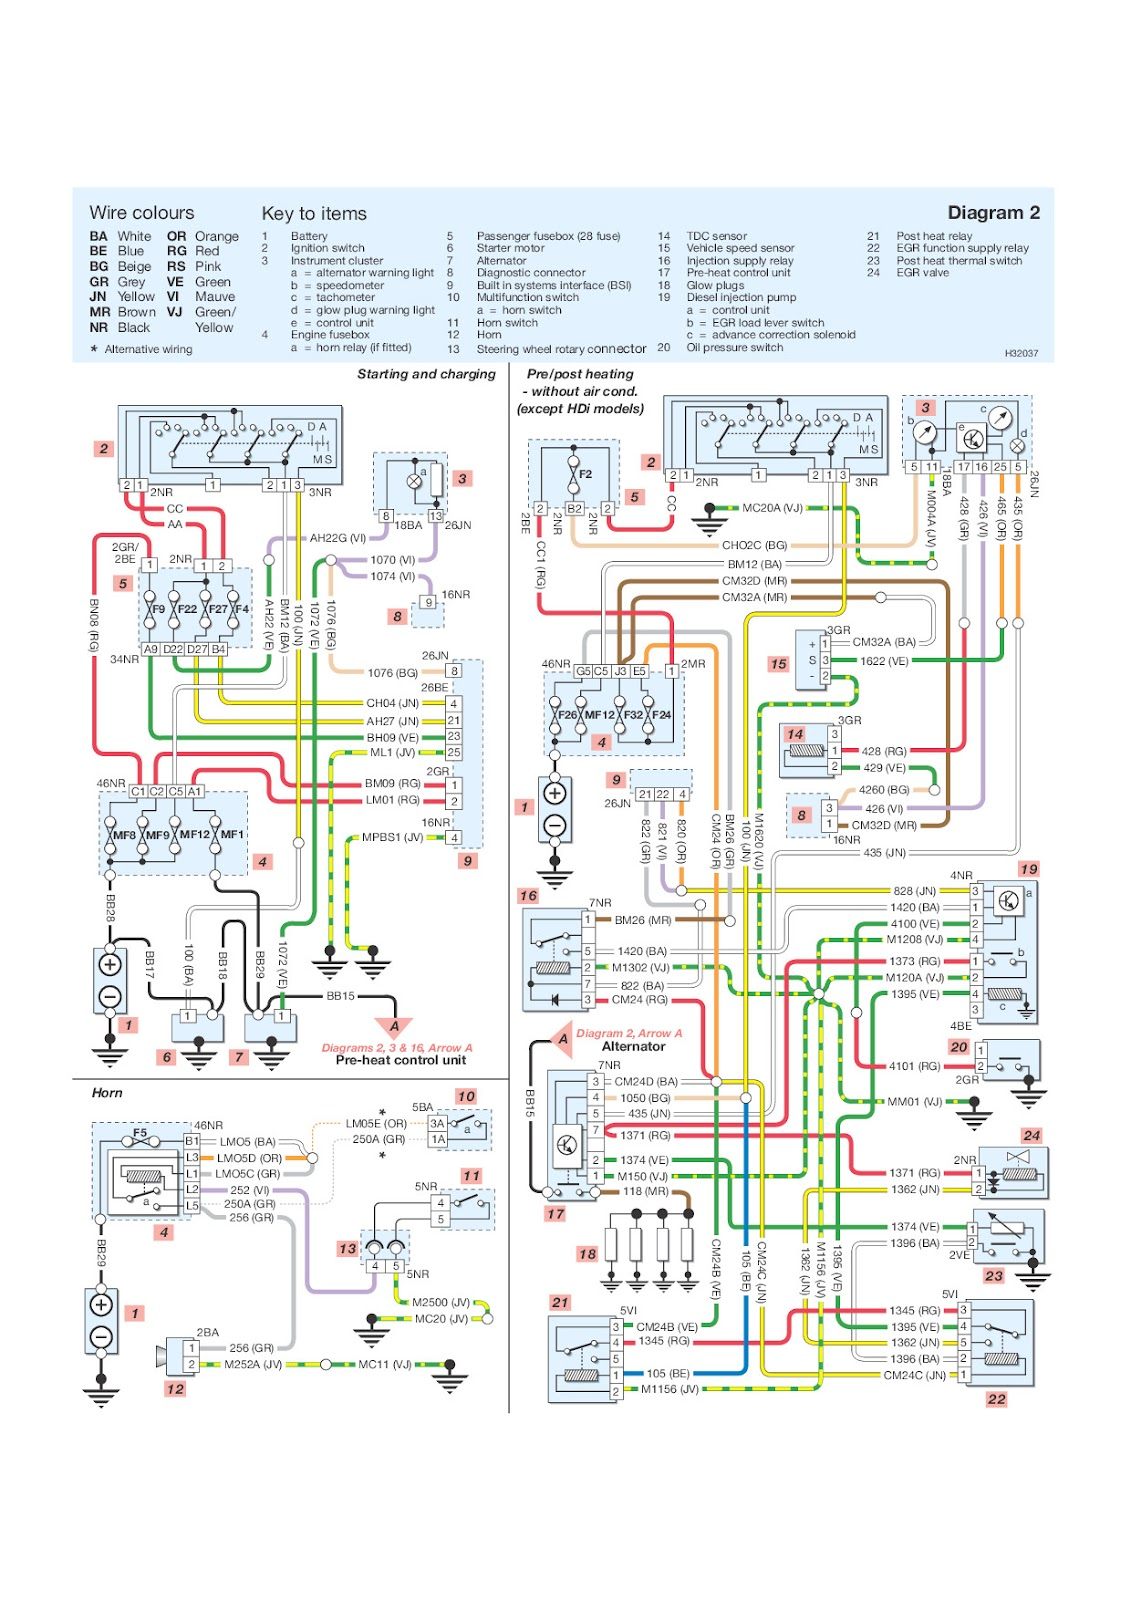 Your Wiring Diagrams Source Peugeot 206 Starting Charging Horn